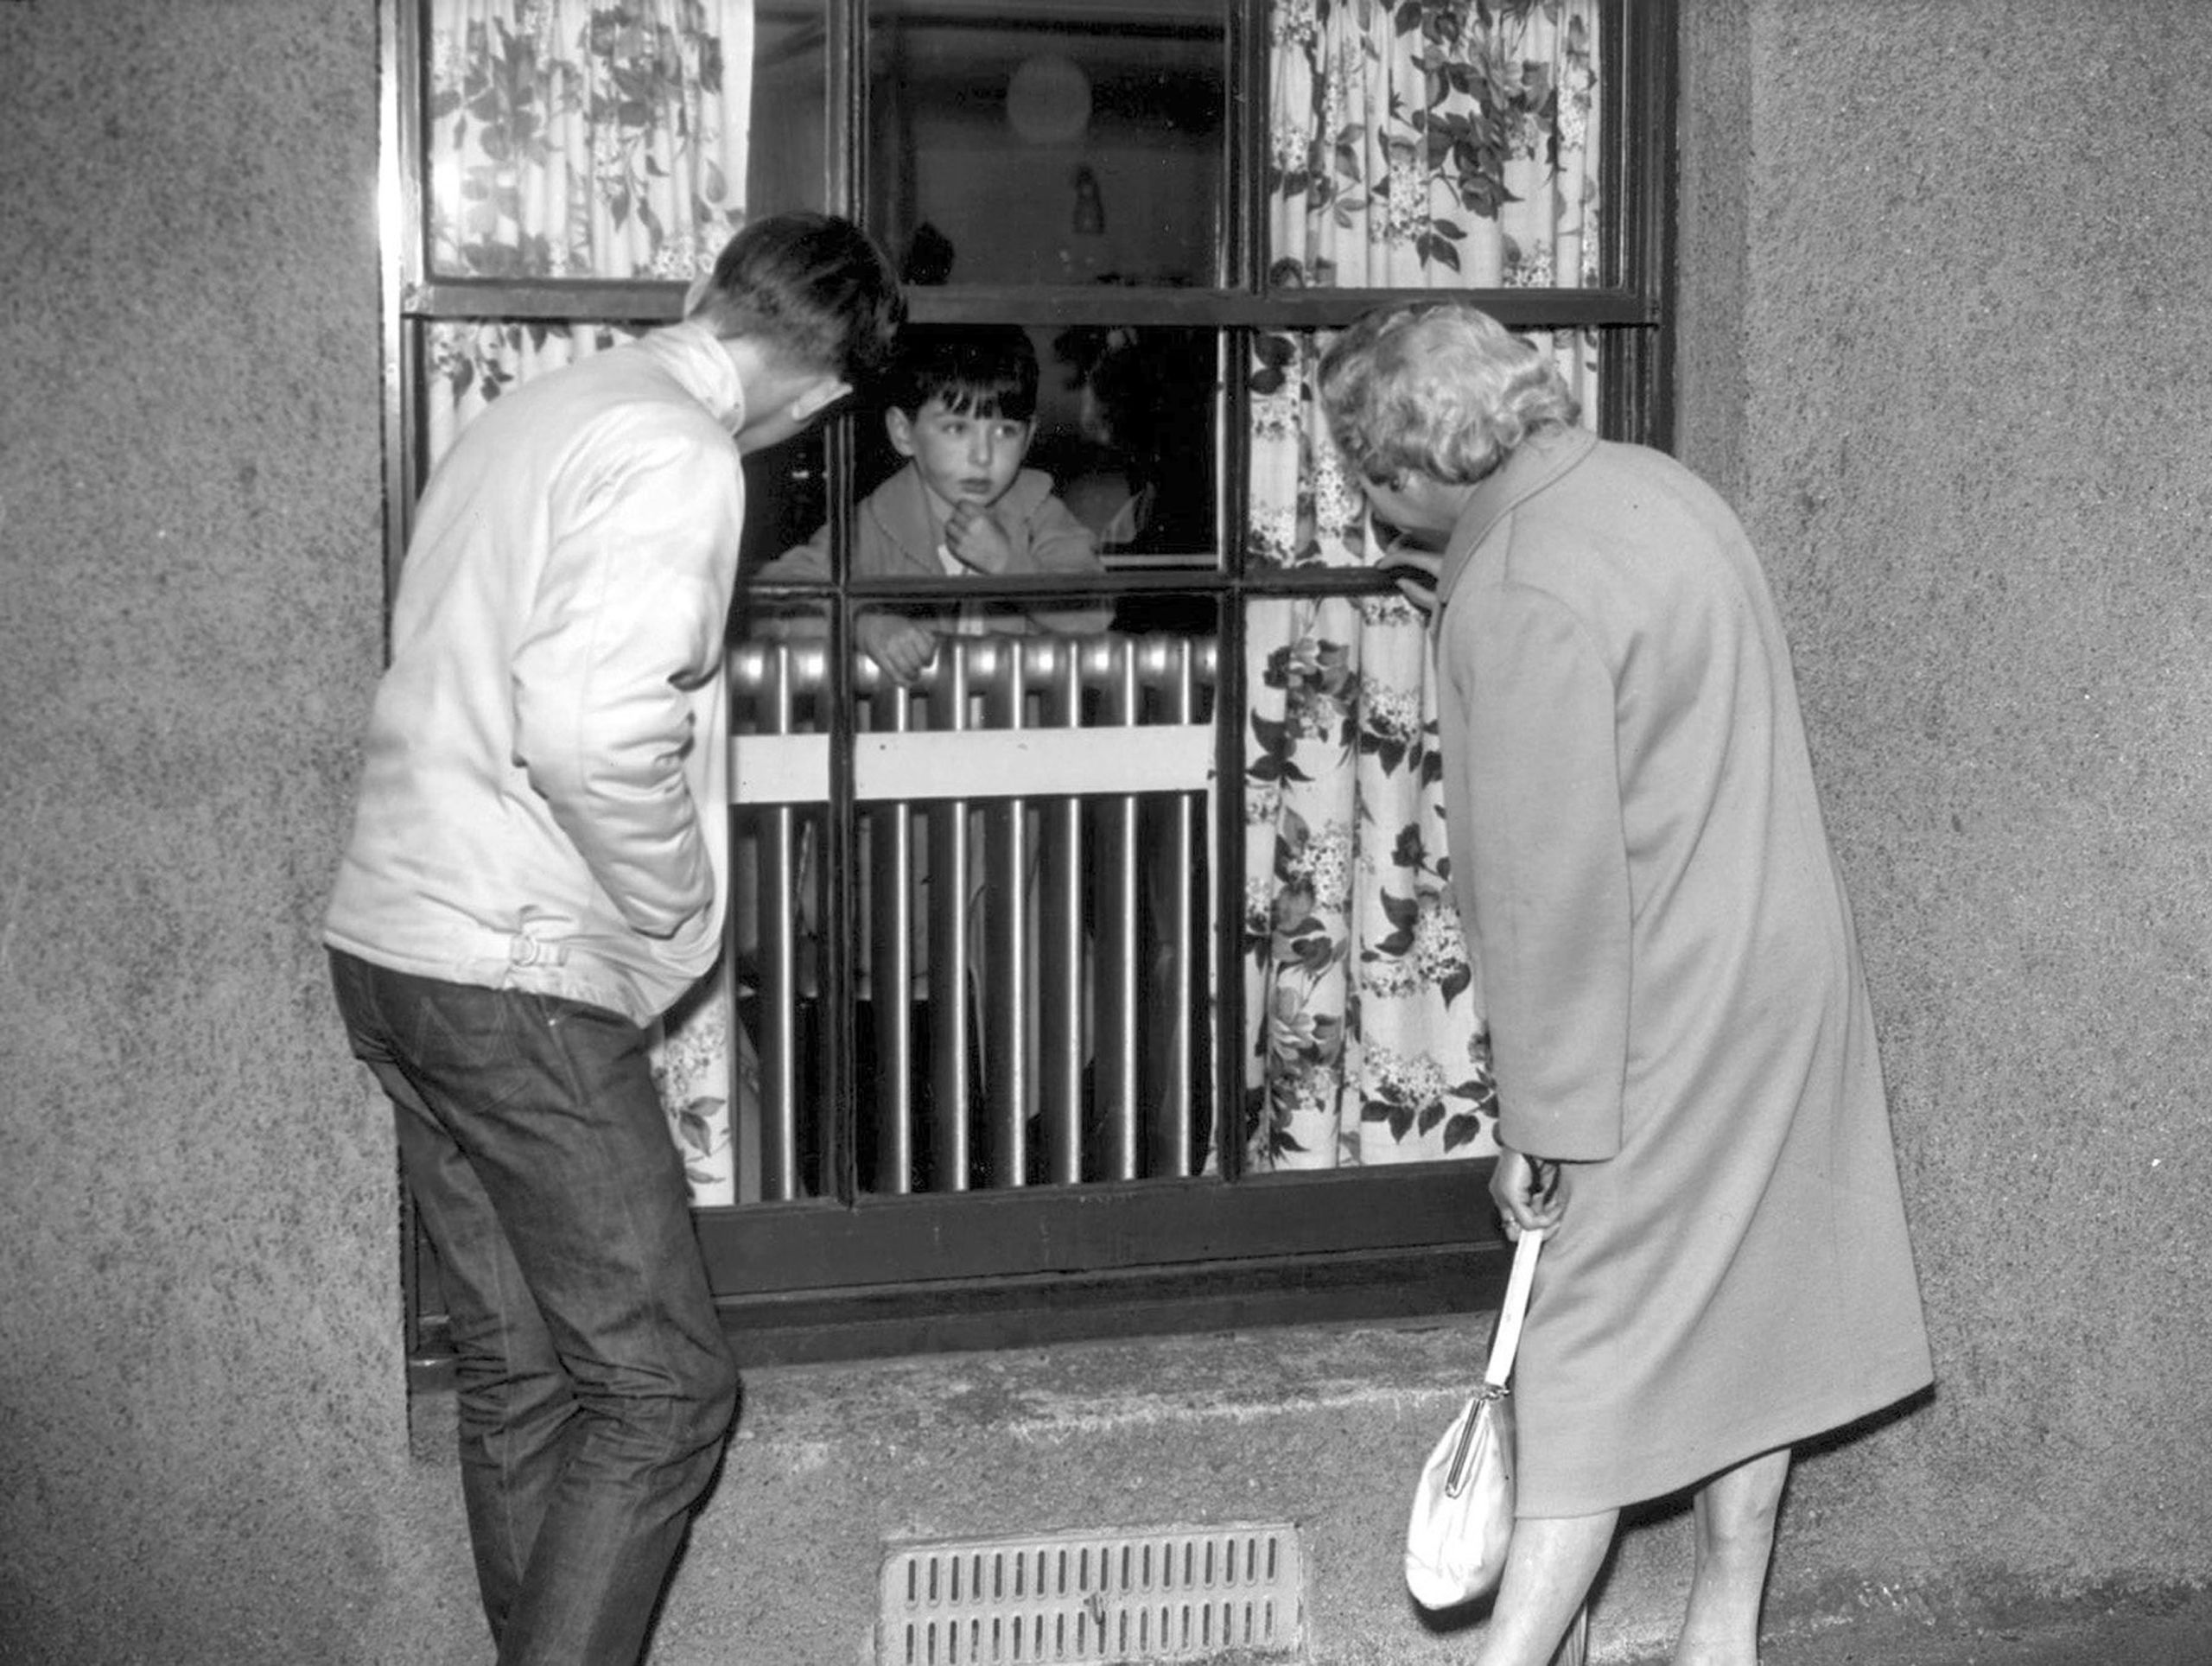 Aberdeen S 1964 Typhoid Outbreak School Closures Medical Isolation And Travel Bans Have Been Weathered Before